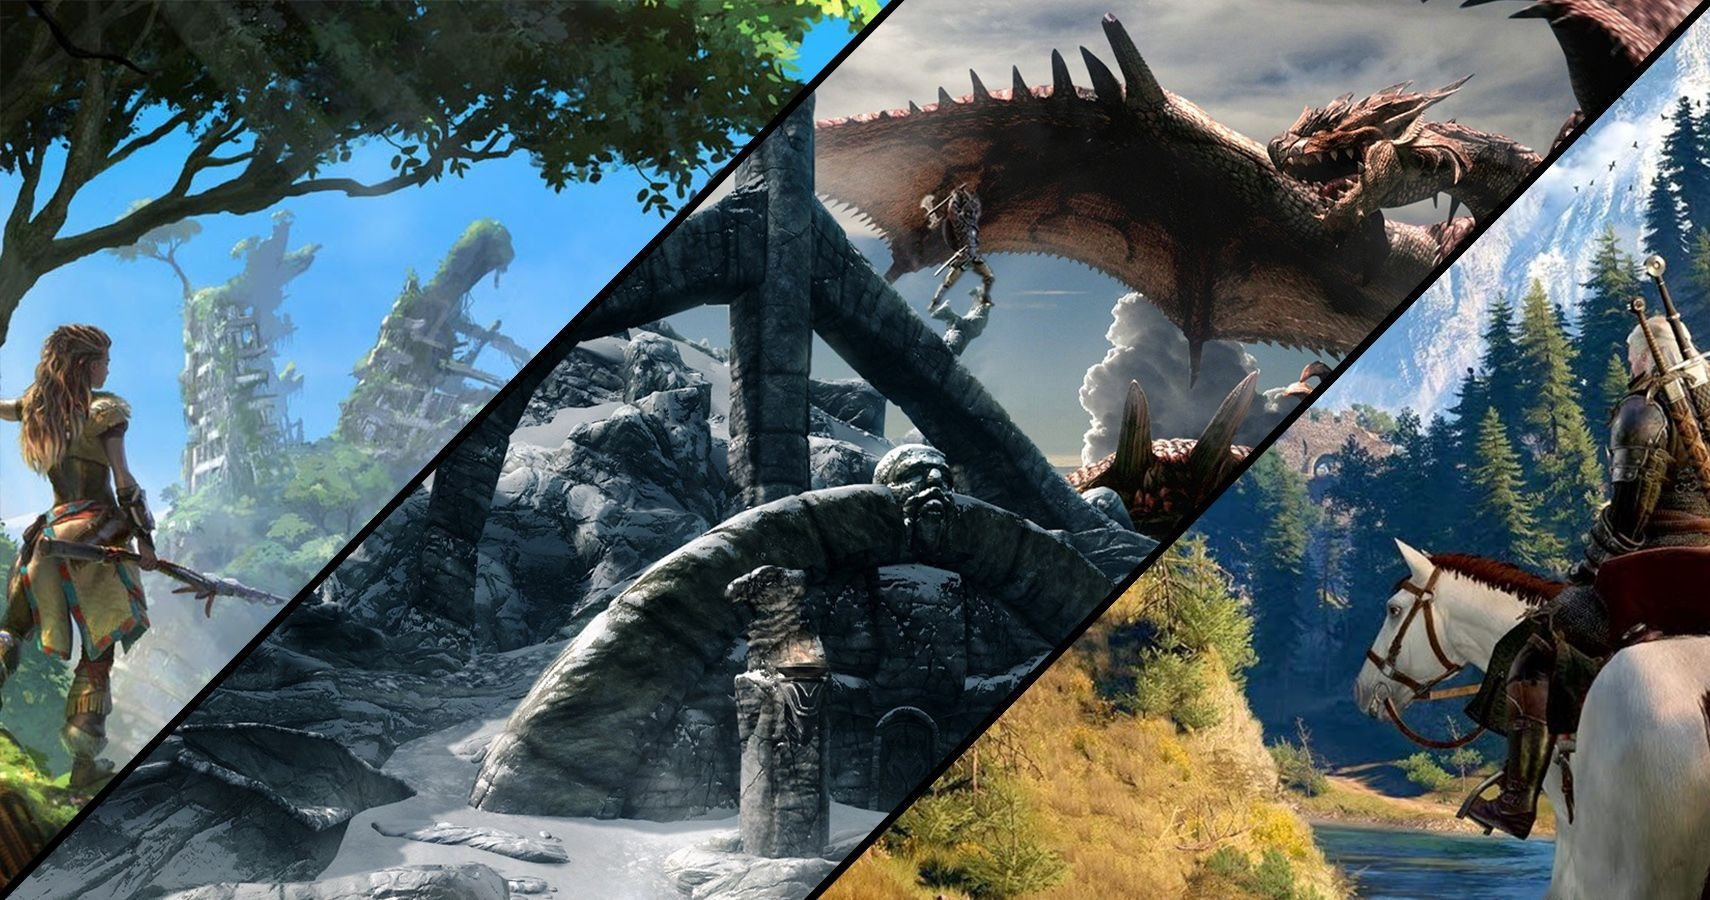 The 40 Biggest Open-Worlds In Video Games Ever From Smallest To Largest